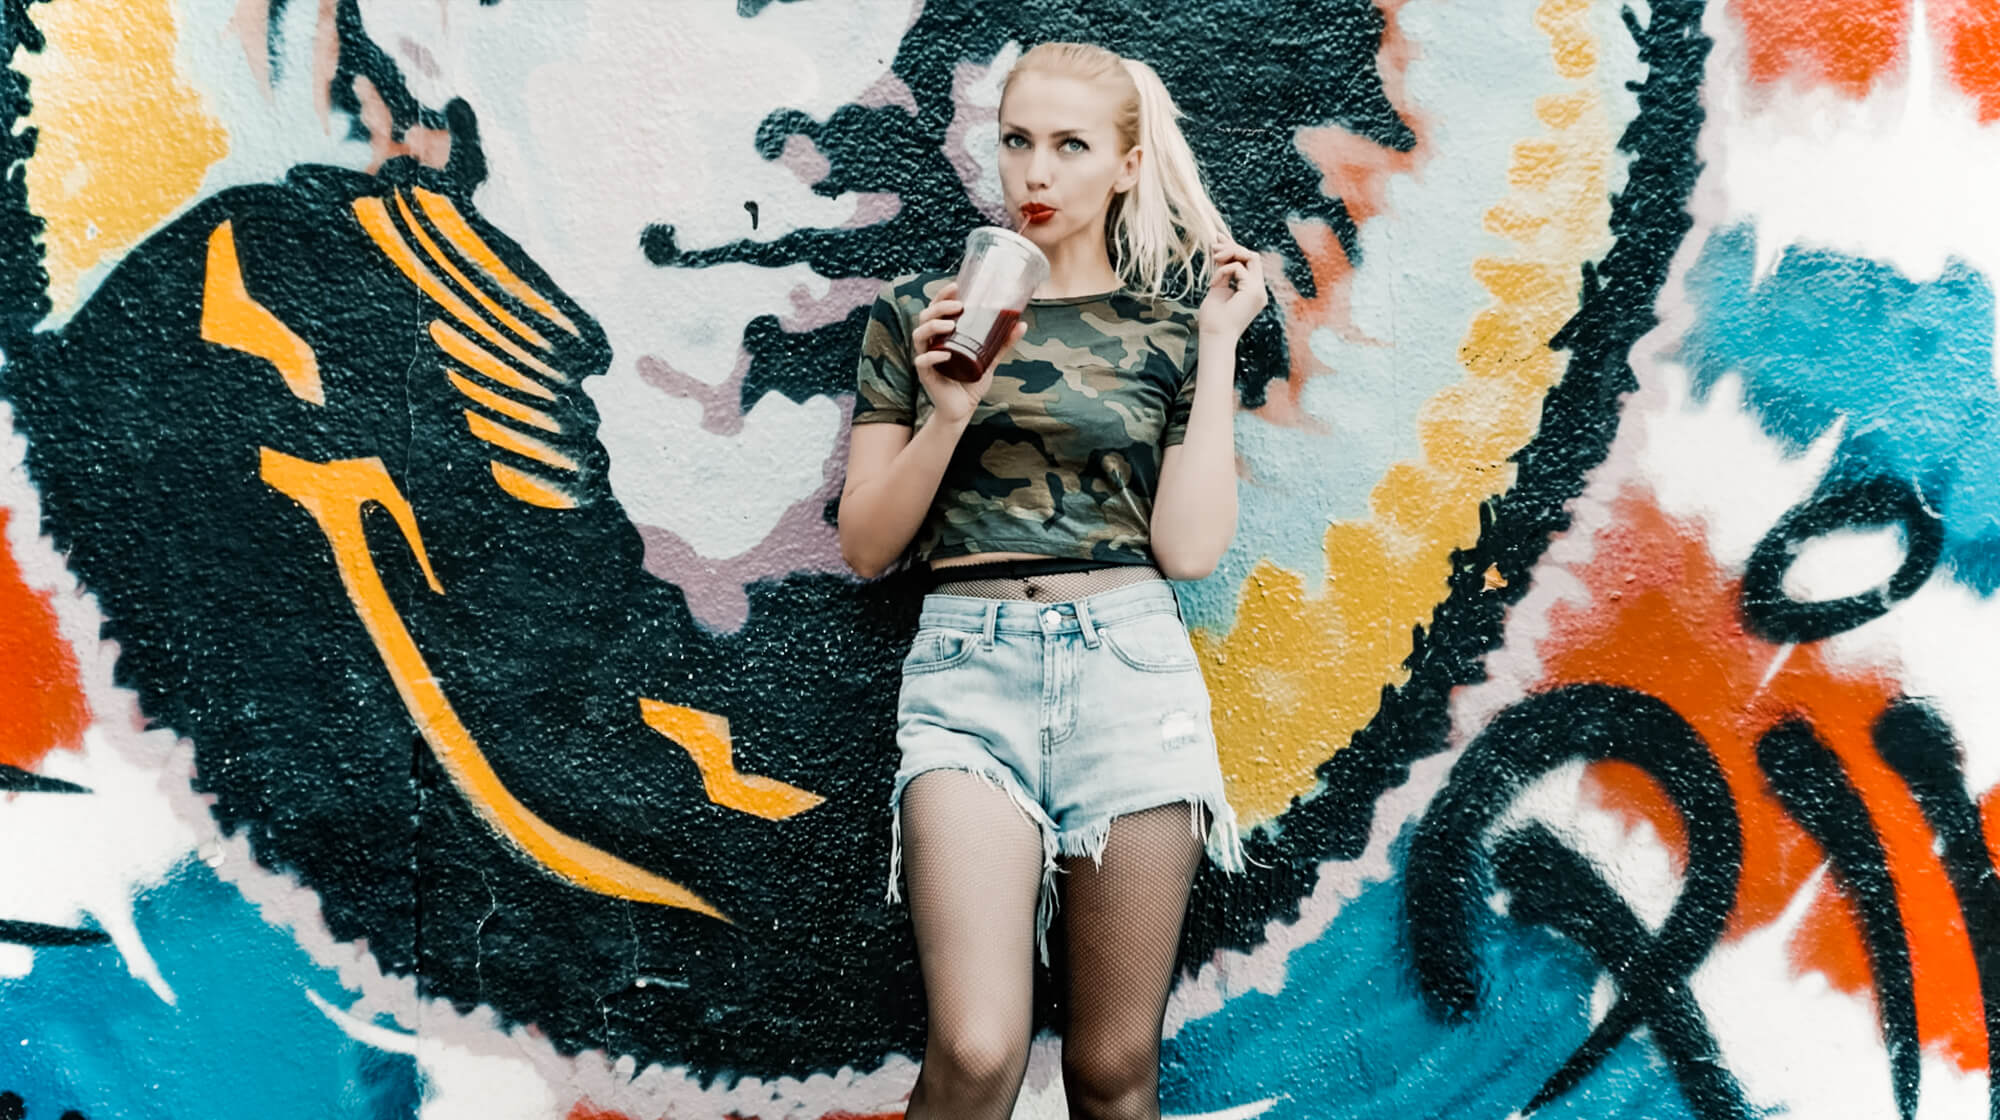 Pre-wedding shoot outfit ideas. Girl with a drink standing by the graffiti wall on a street